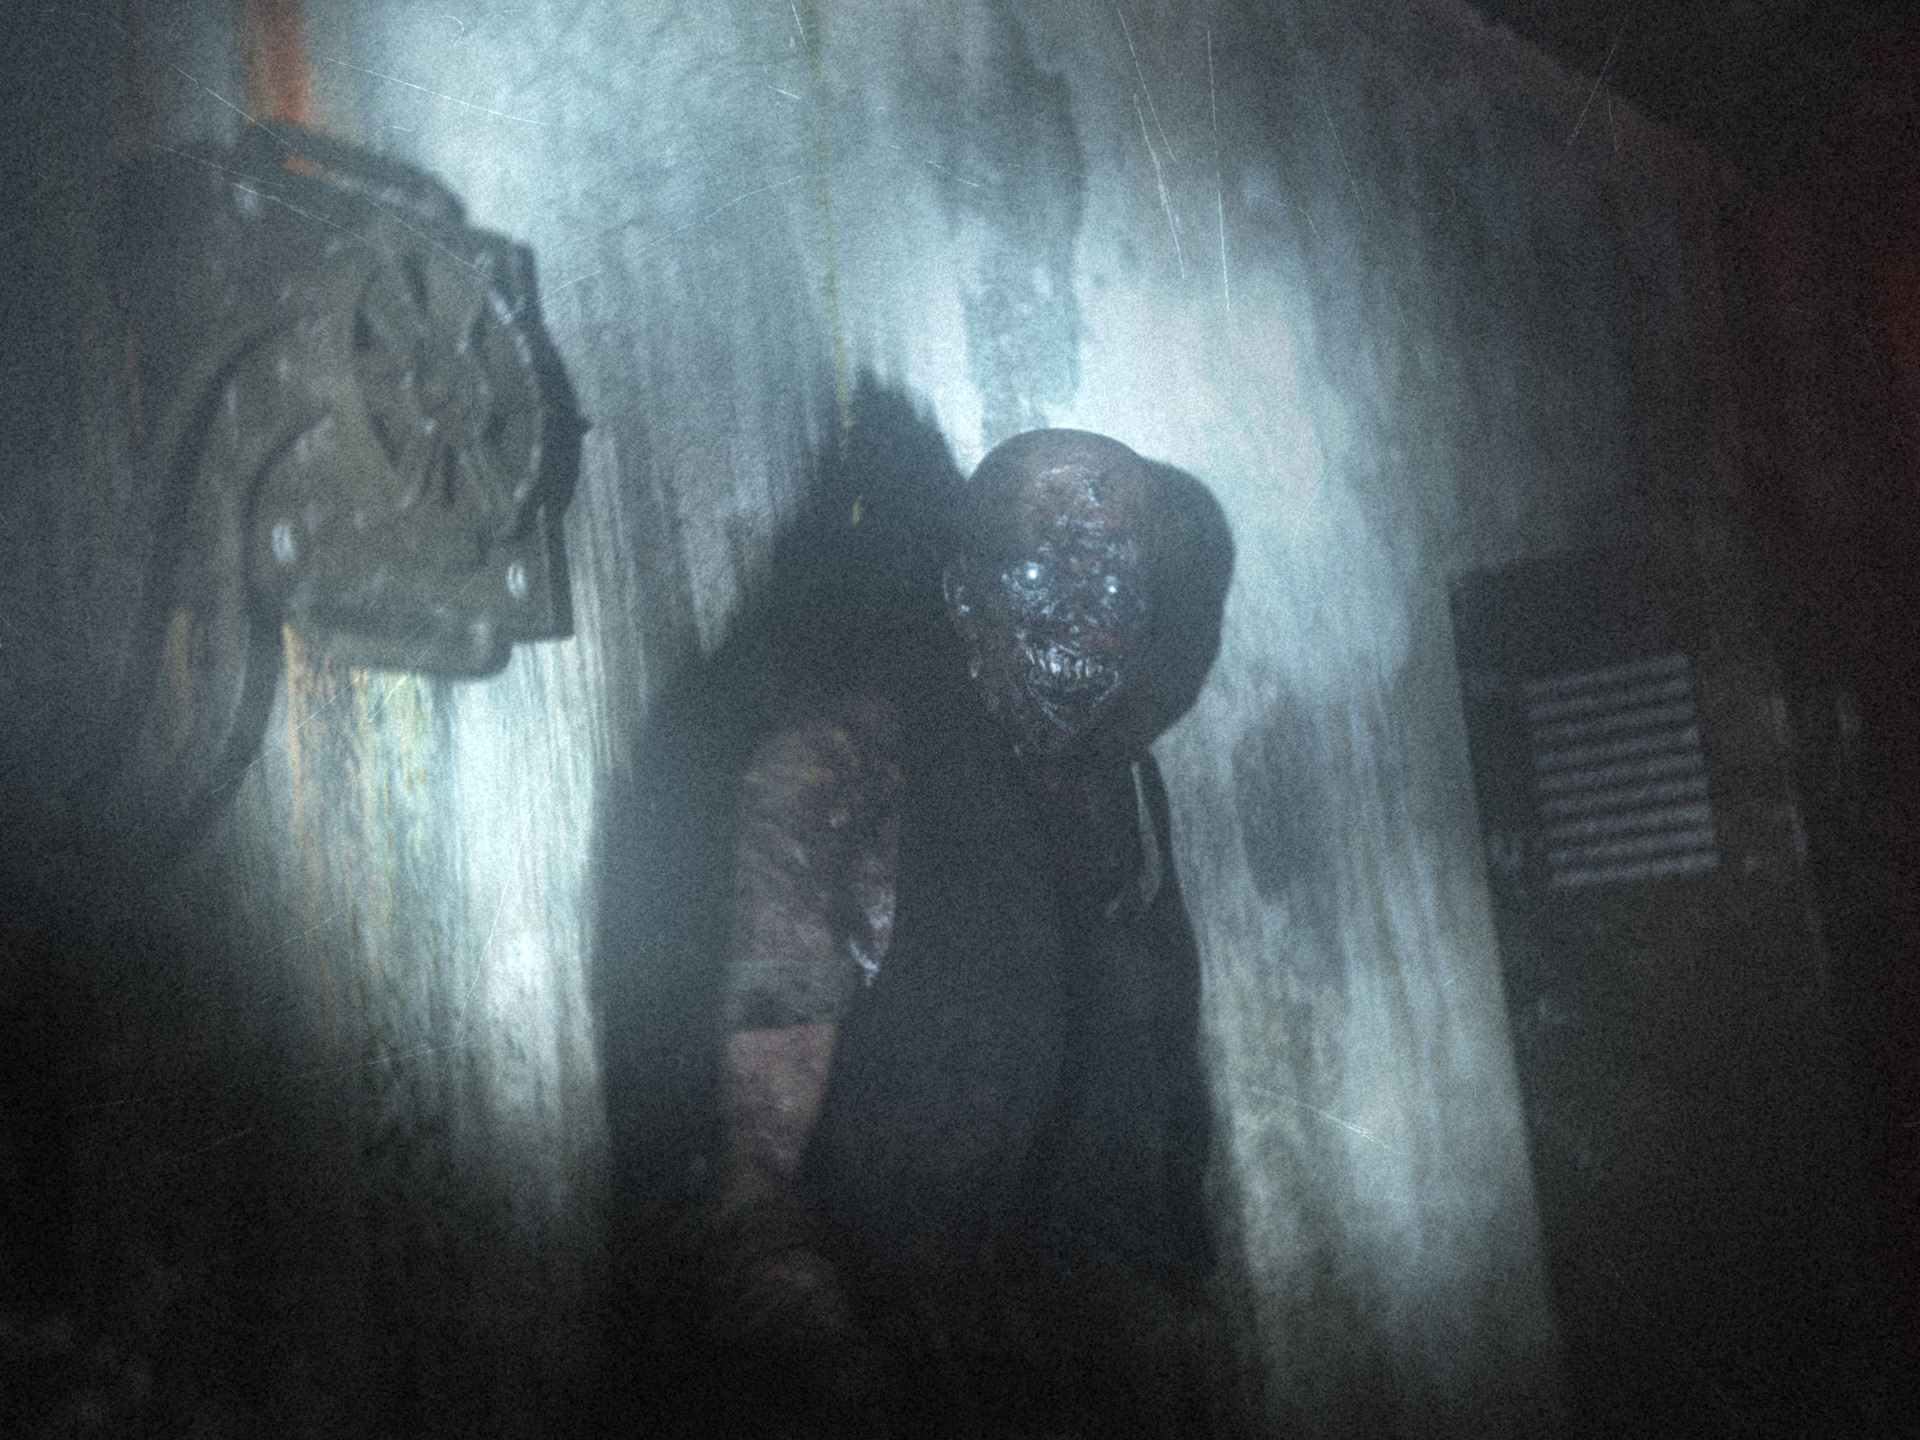 Scp 728